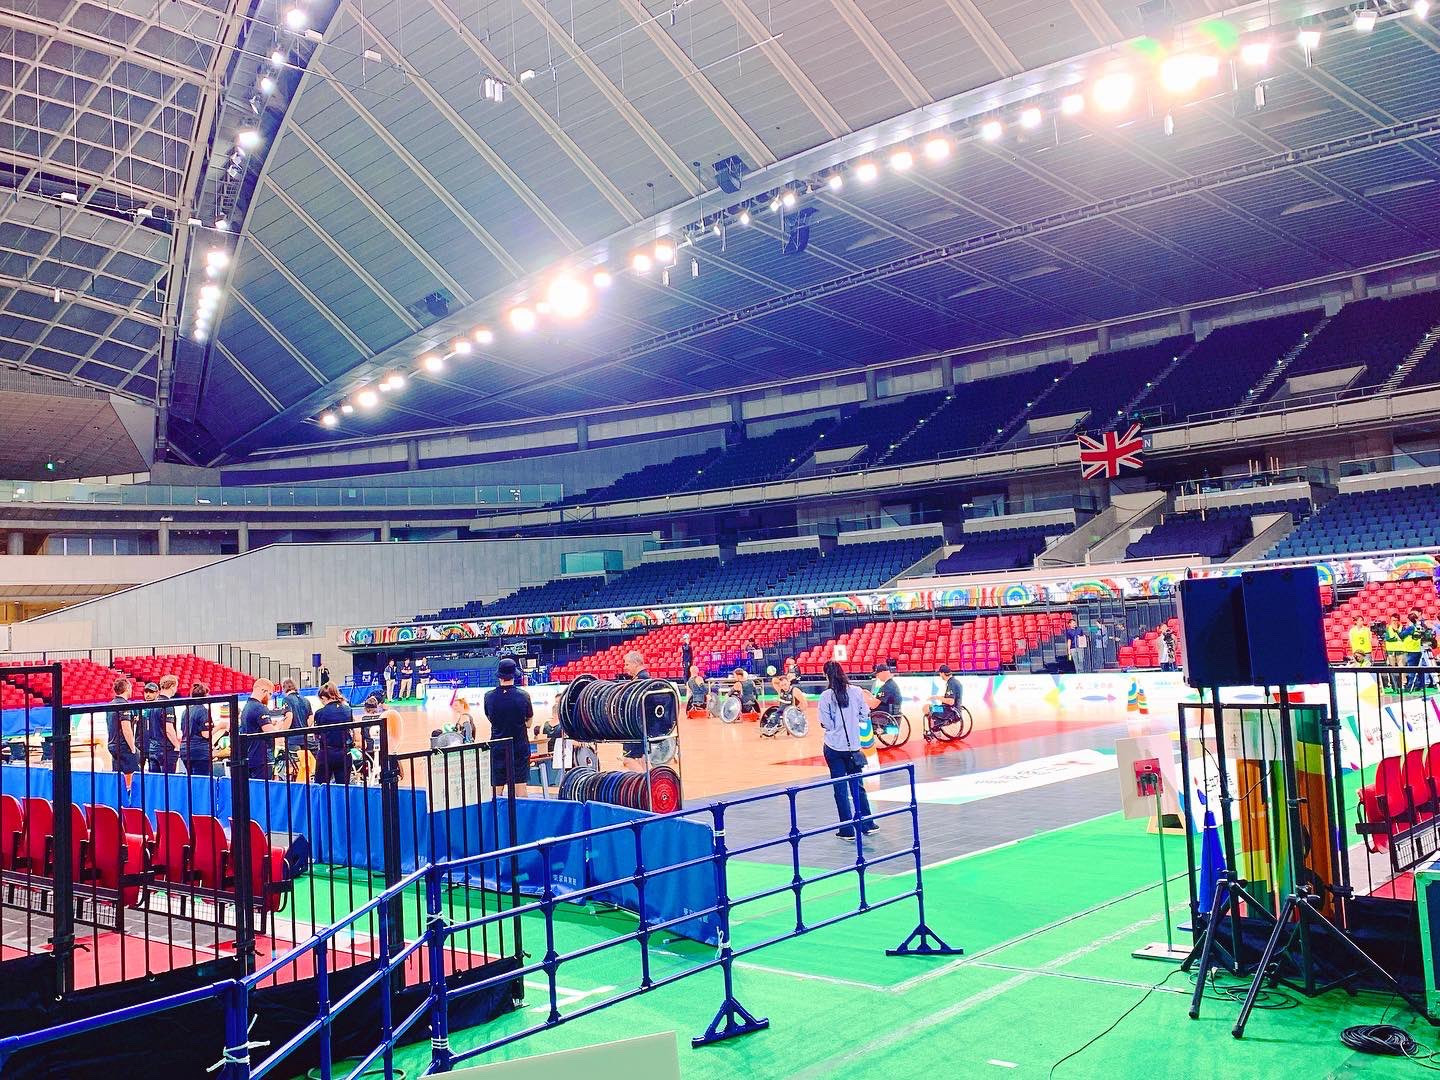 The Tokyo Metropolitan Gymnasium will host table tennis at the Olympic and Paralympic Games next year ©GBWR/Twitter